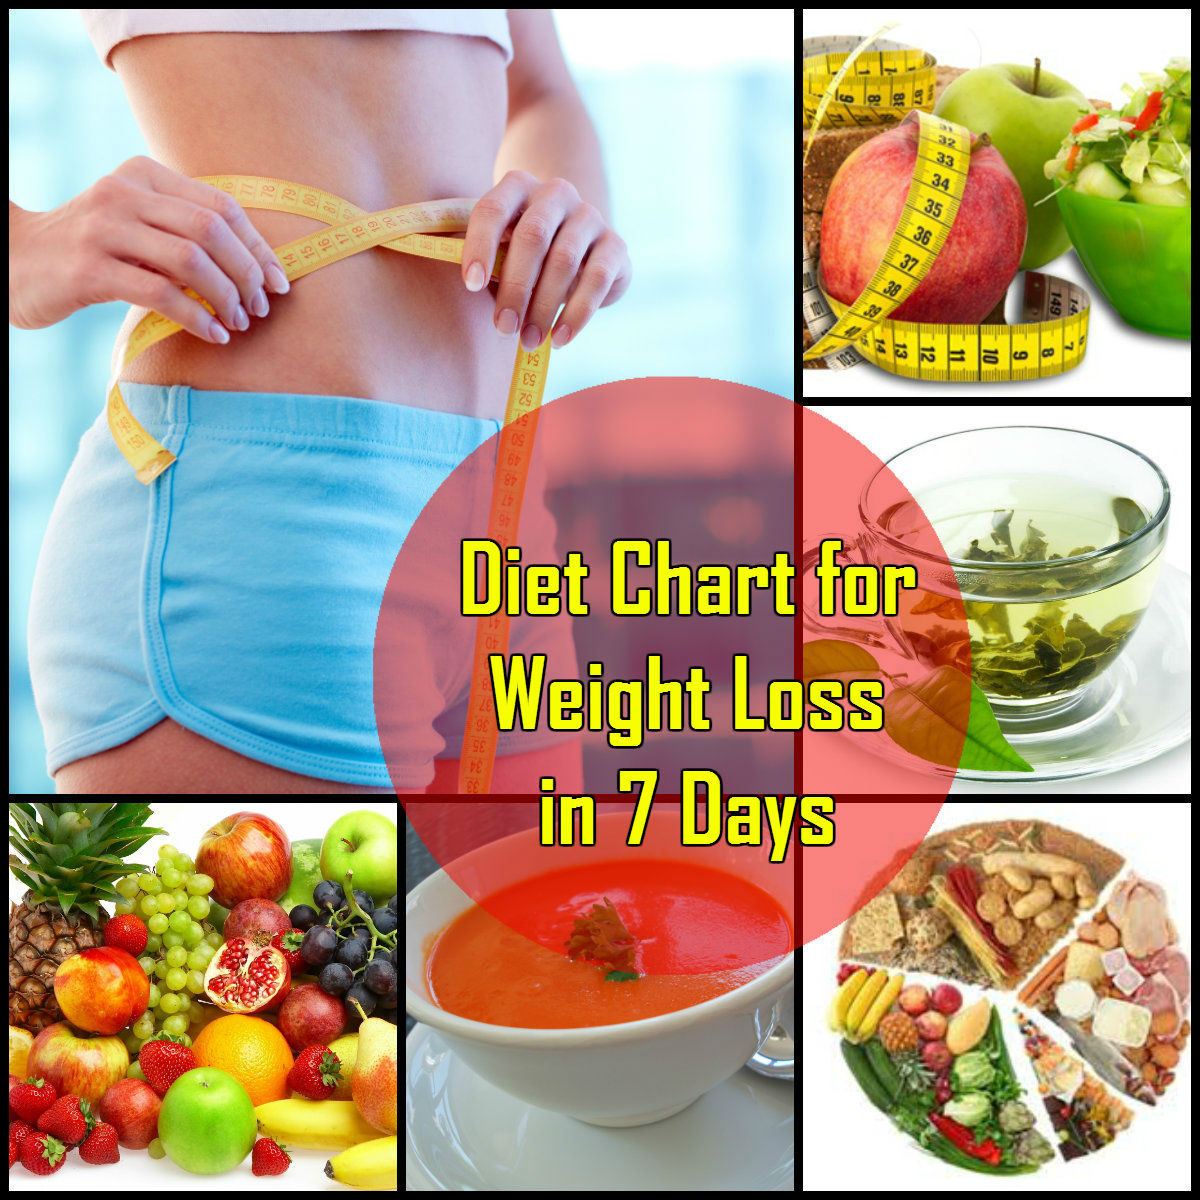 Diet chart for weight loss in hindi motapa kaam karne ke liye diet plan diet chart for weight loss in 7 days in hindi forumfinder Images